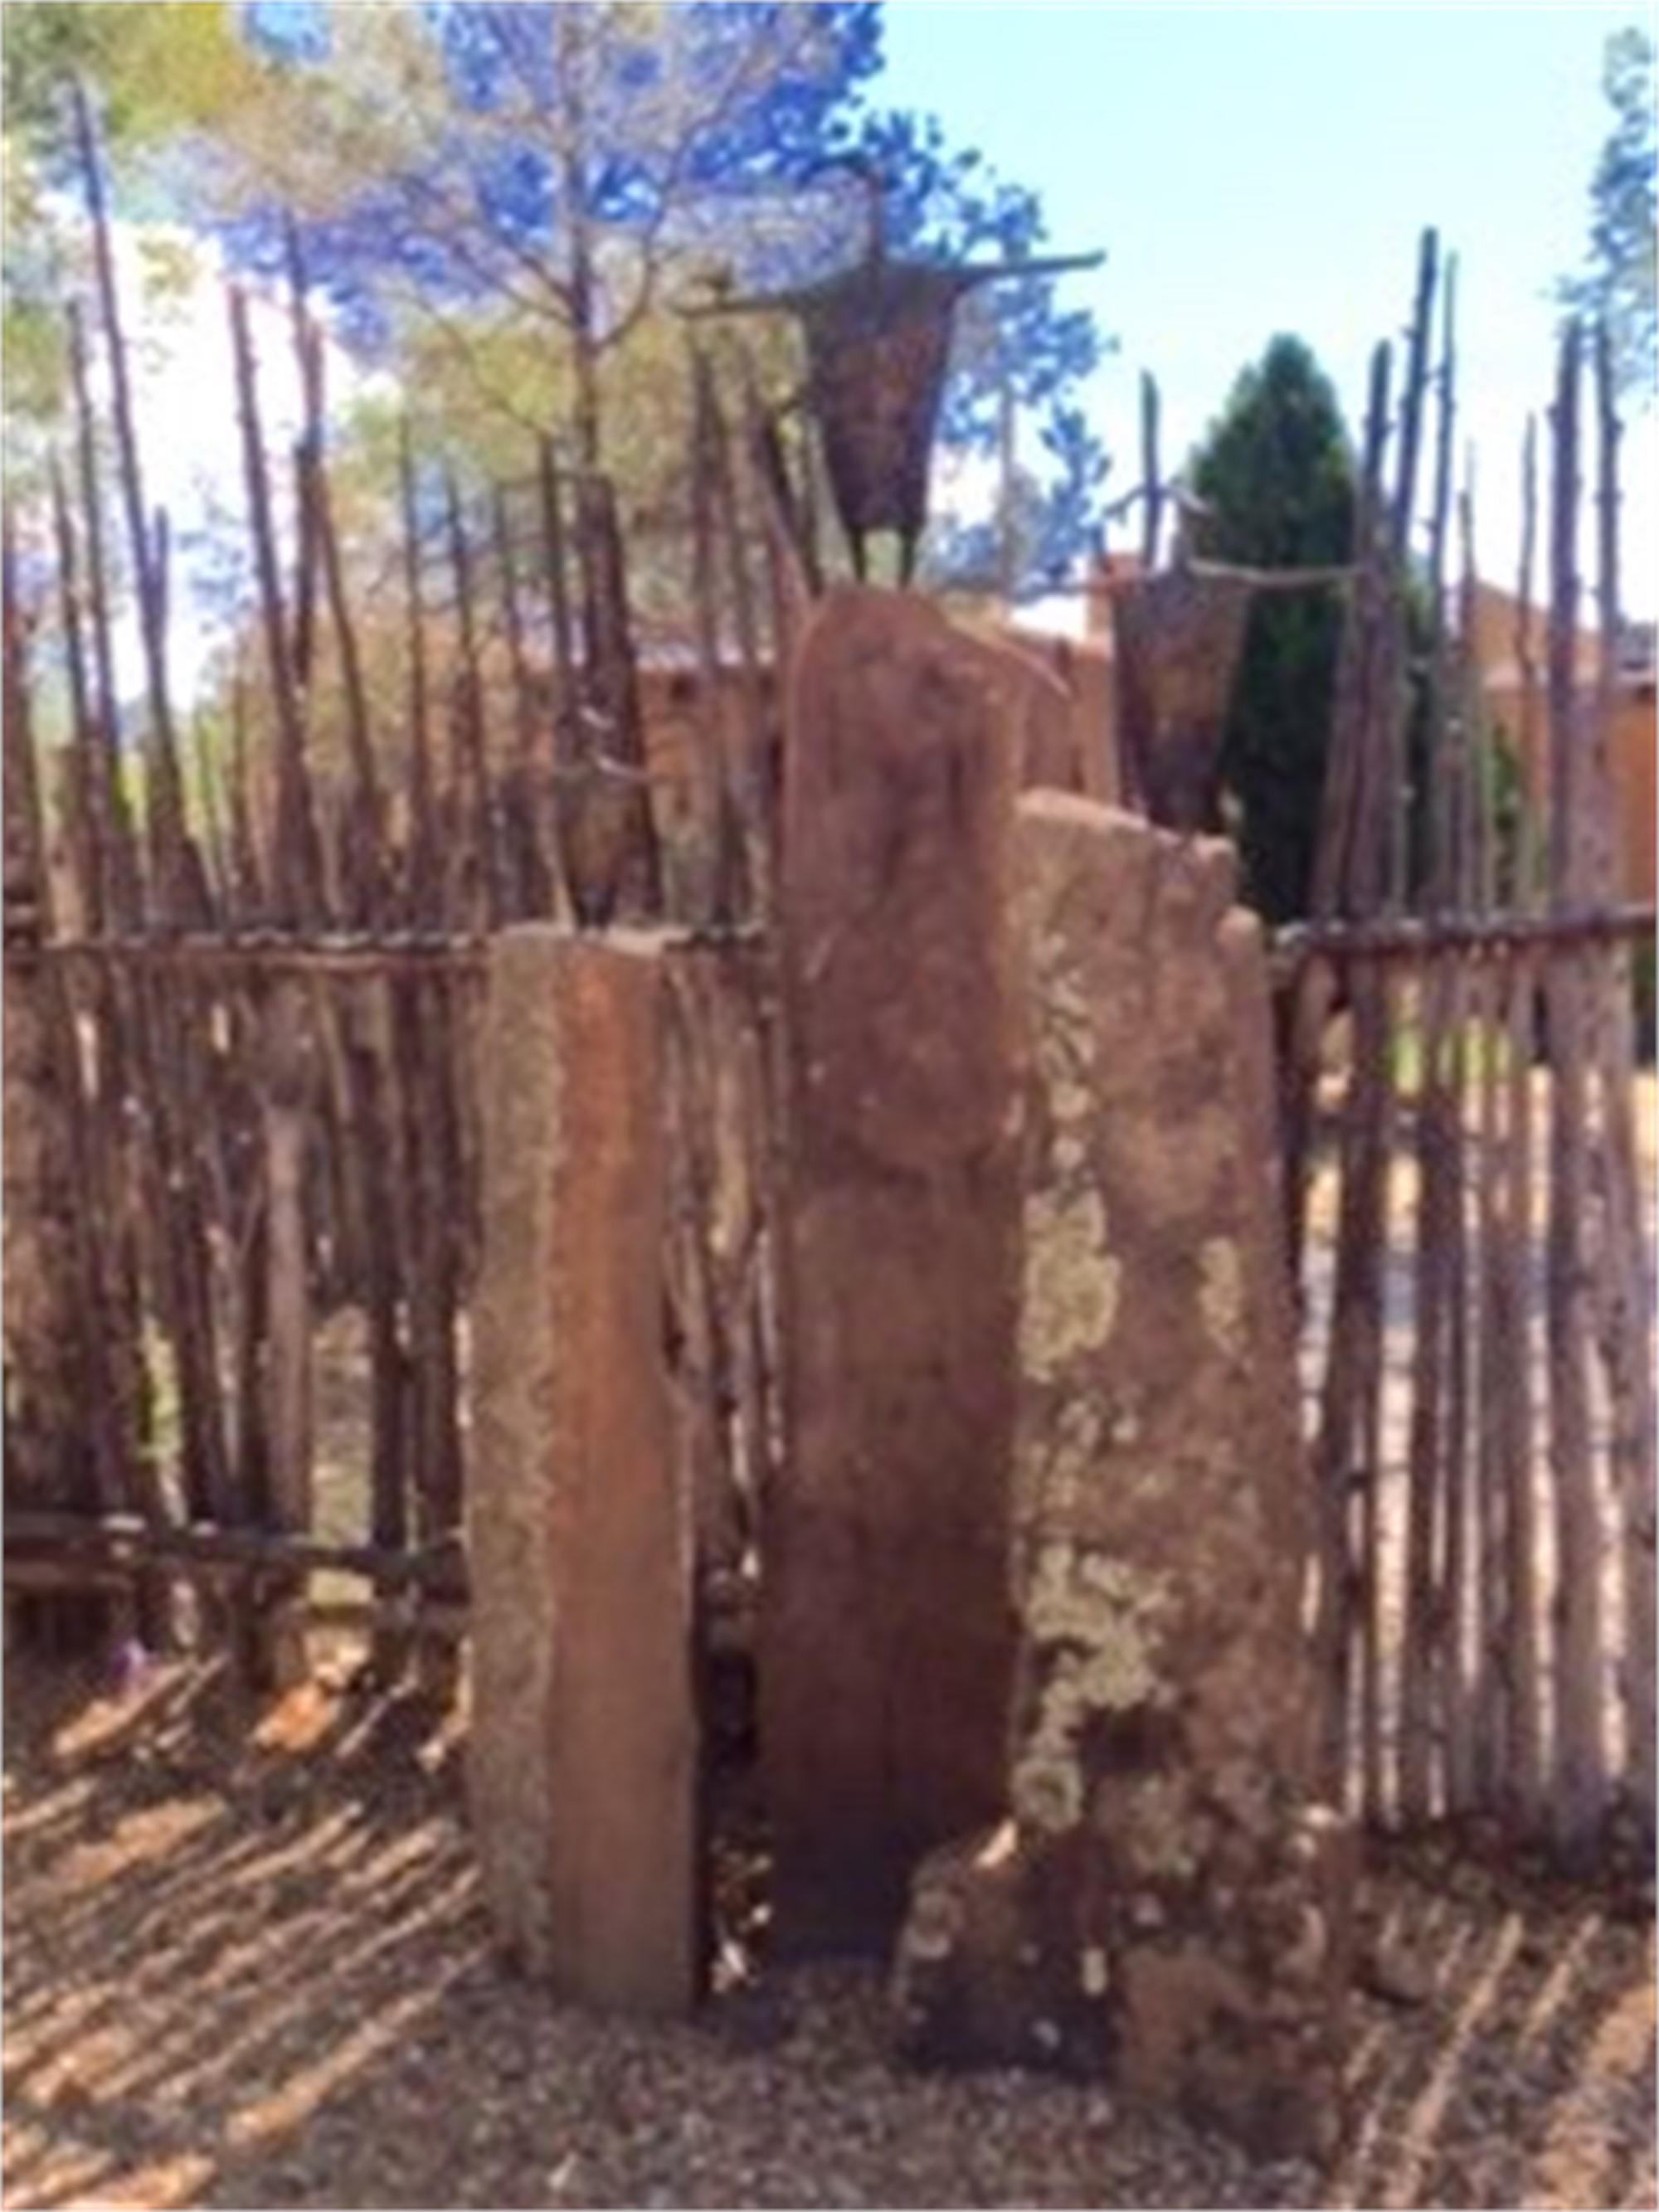 """LESSONS OF THE BALANCE ON ROCK PEDESTAL- Medium Size Outdoor Bronze Sculpture $4000 (23""""x23.5"""") Rock Pedestal $2500 (69""""x15"""" + 14"""" underground) May be purchased separately or together for a total of $6500 by Jill Shwaiko"""